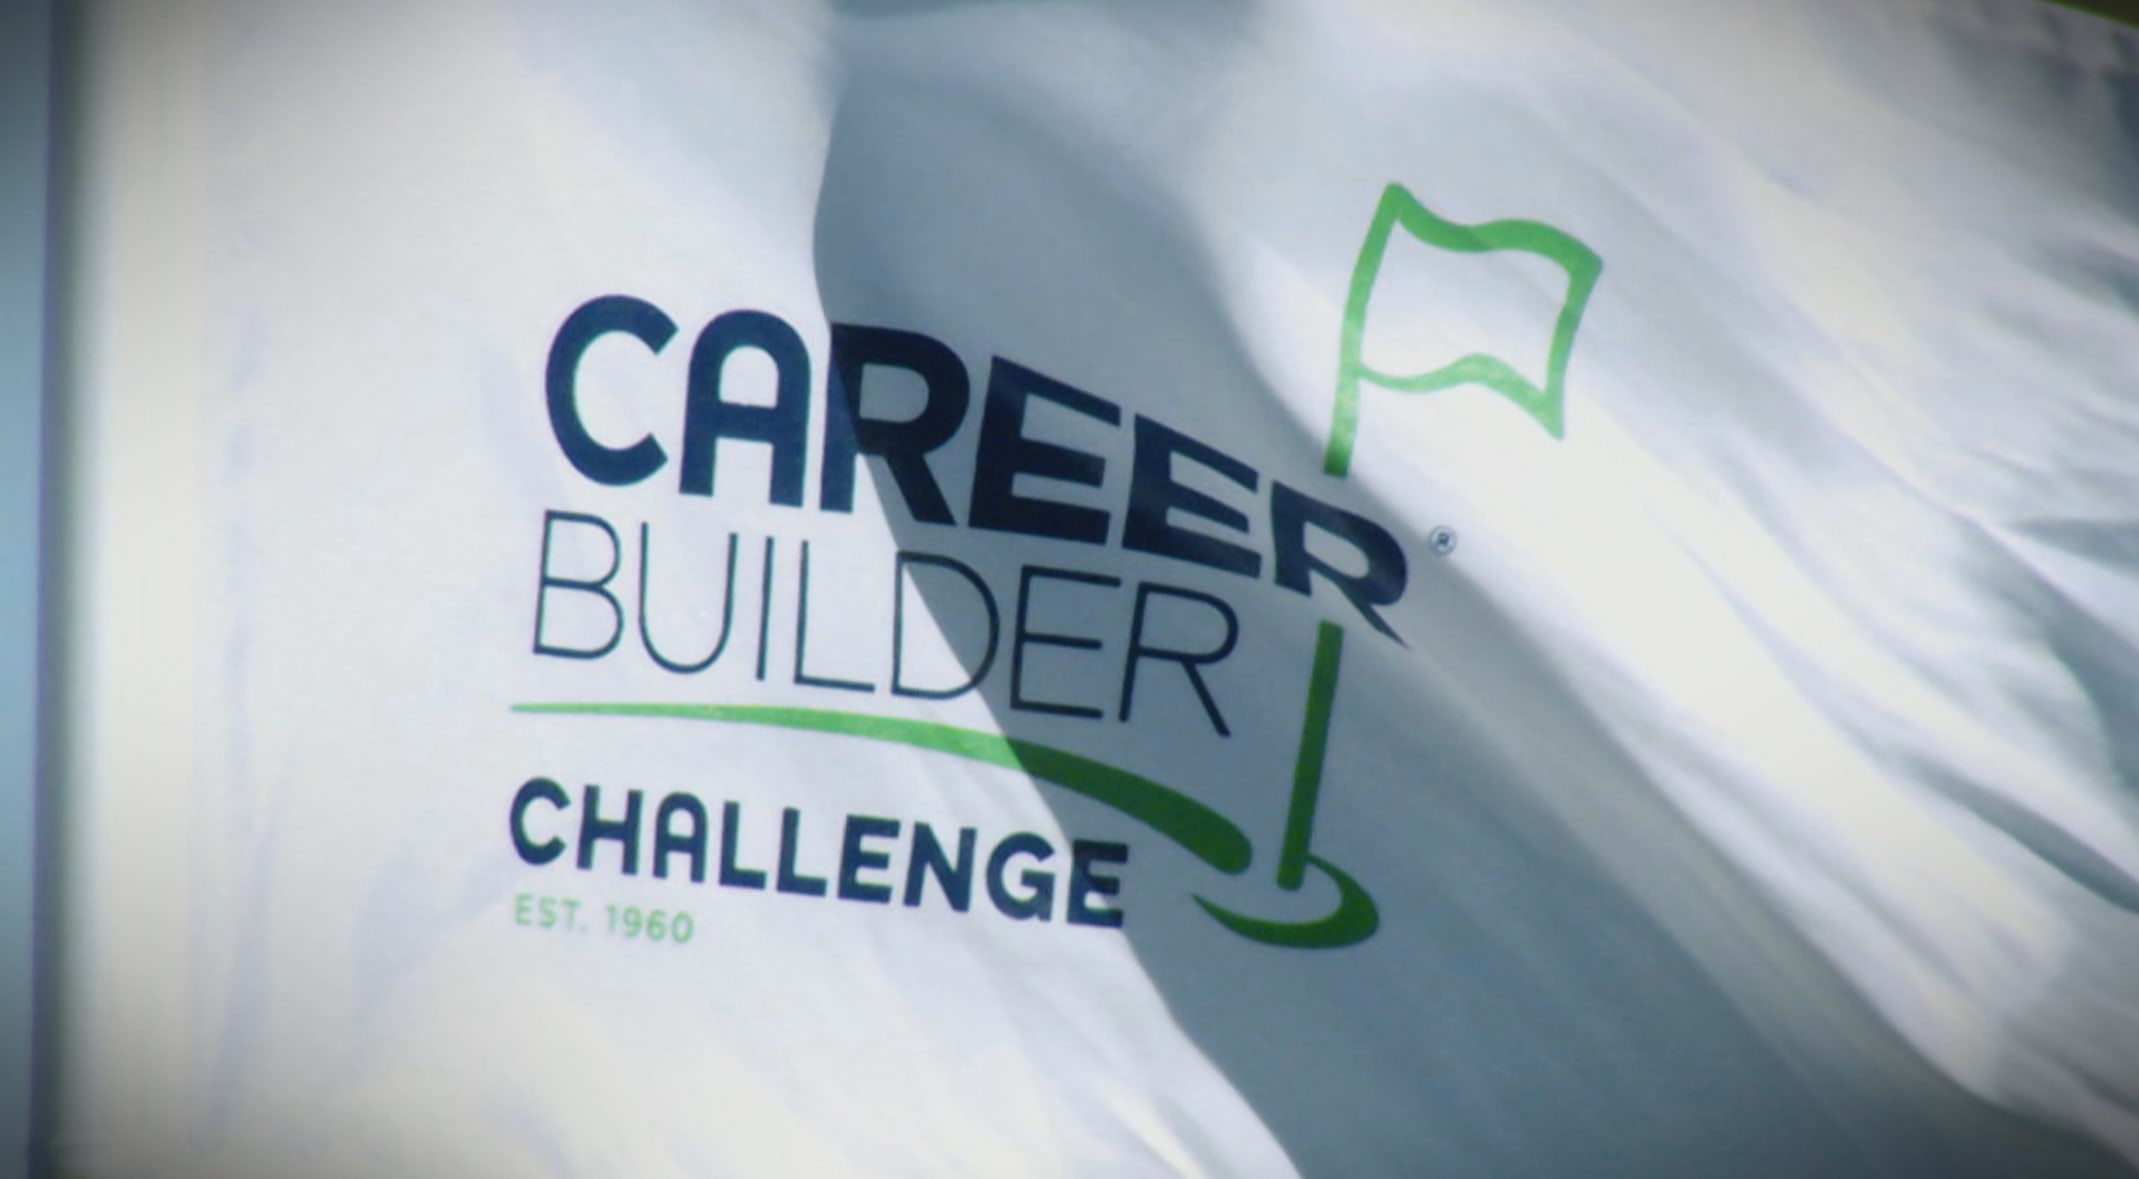 Quick look at the CareerBuilder Challenge